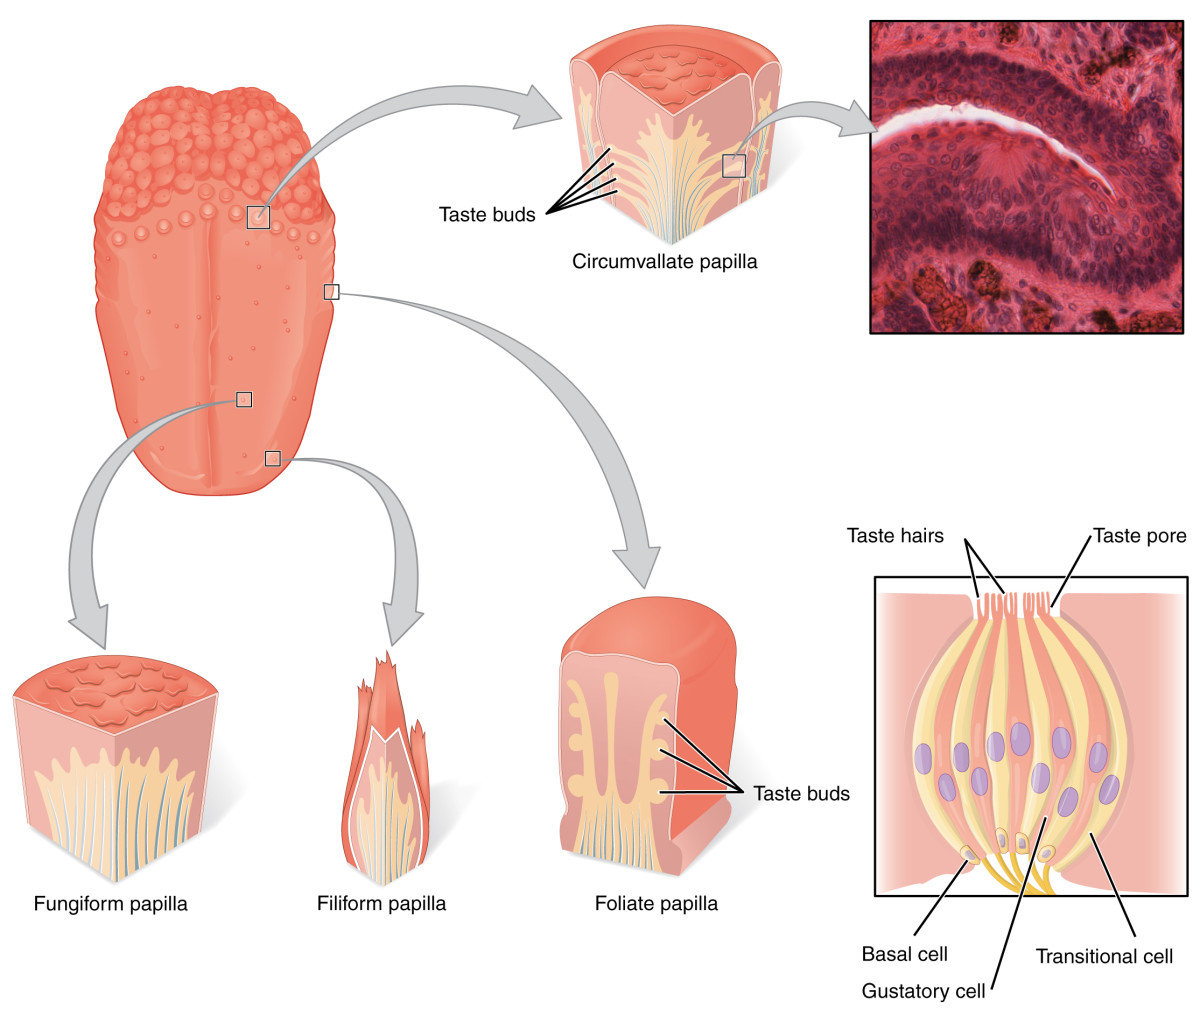 Diagram of human tongue anatomy—including various types of papillae and the taste bud.